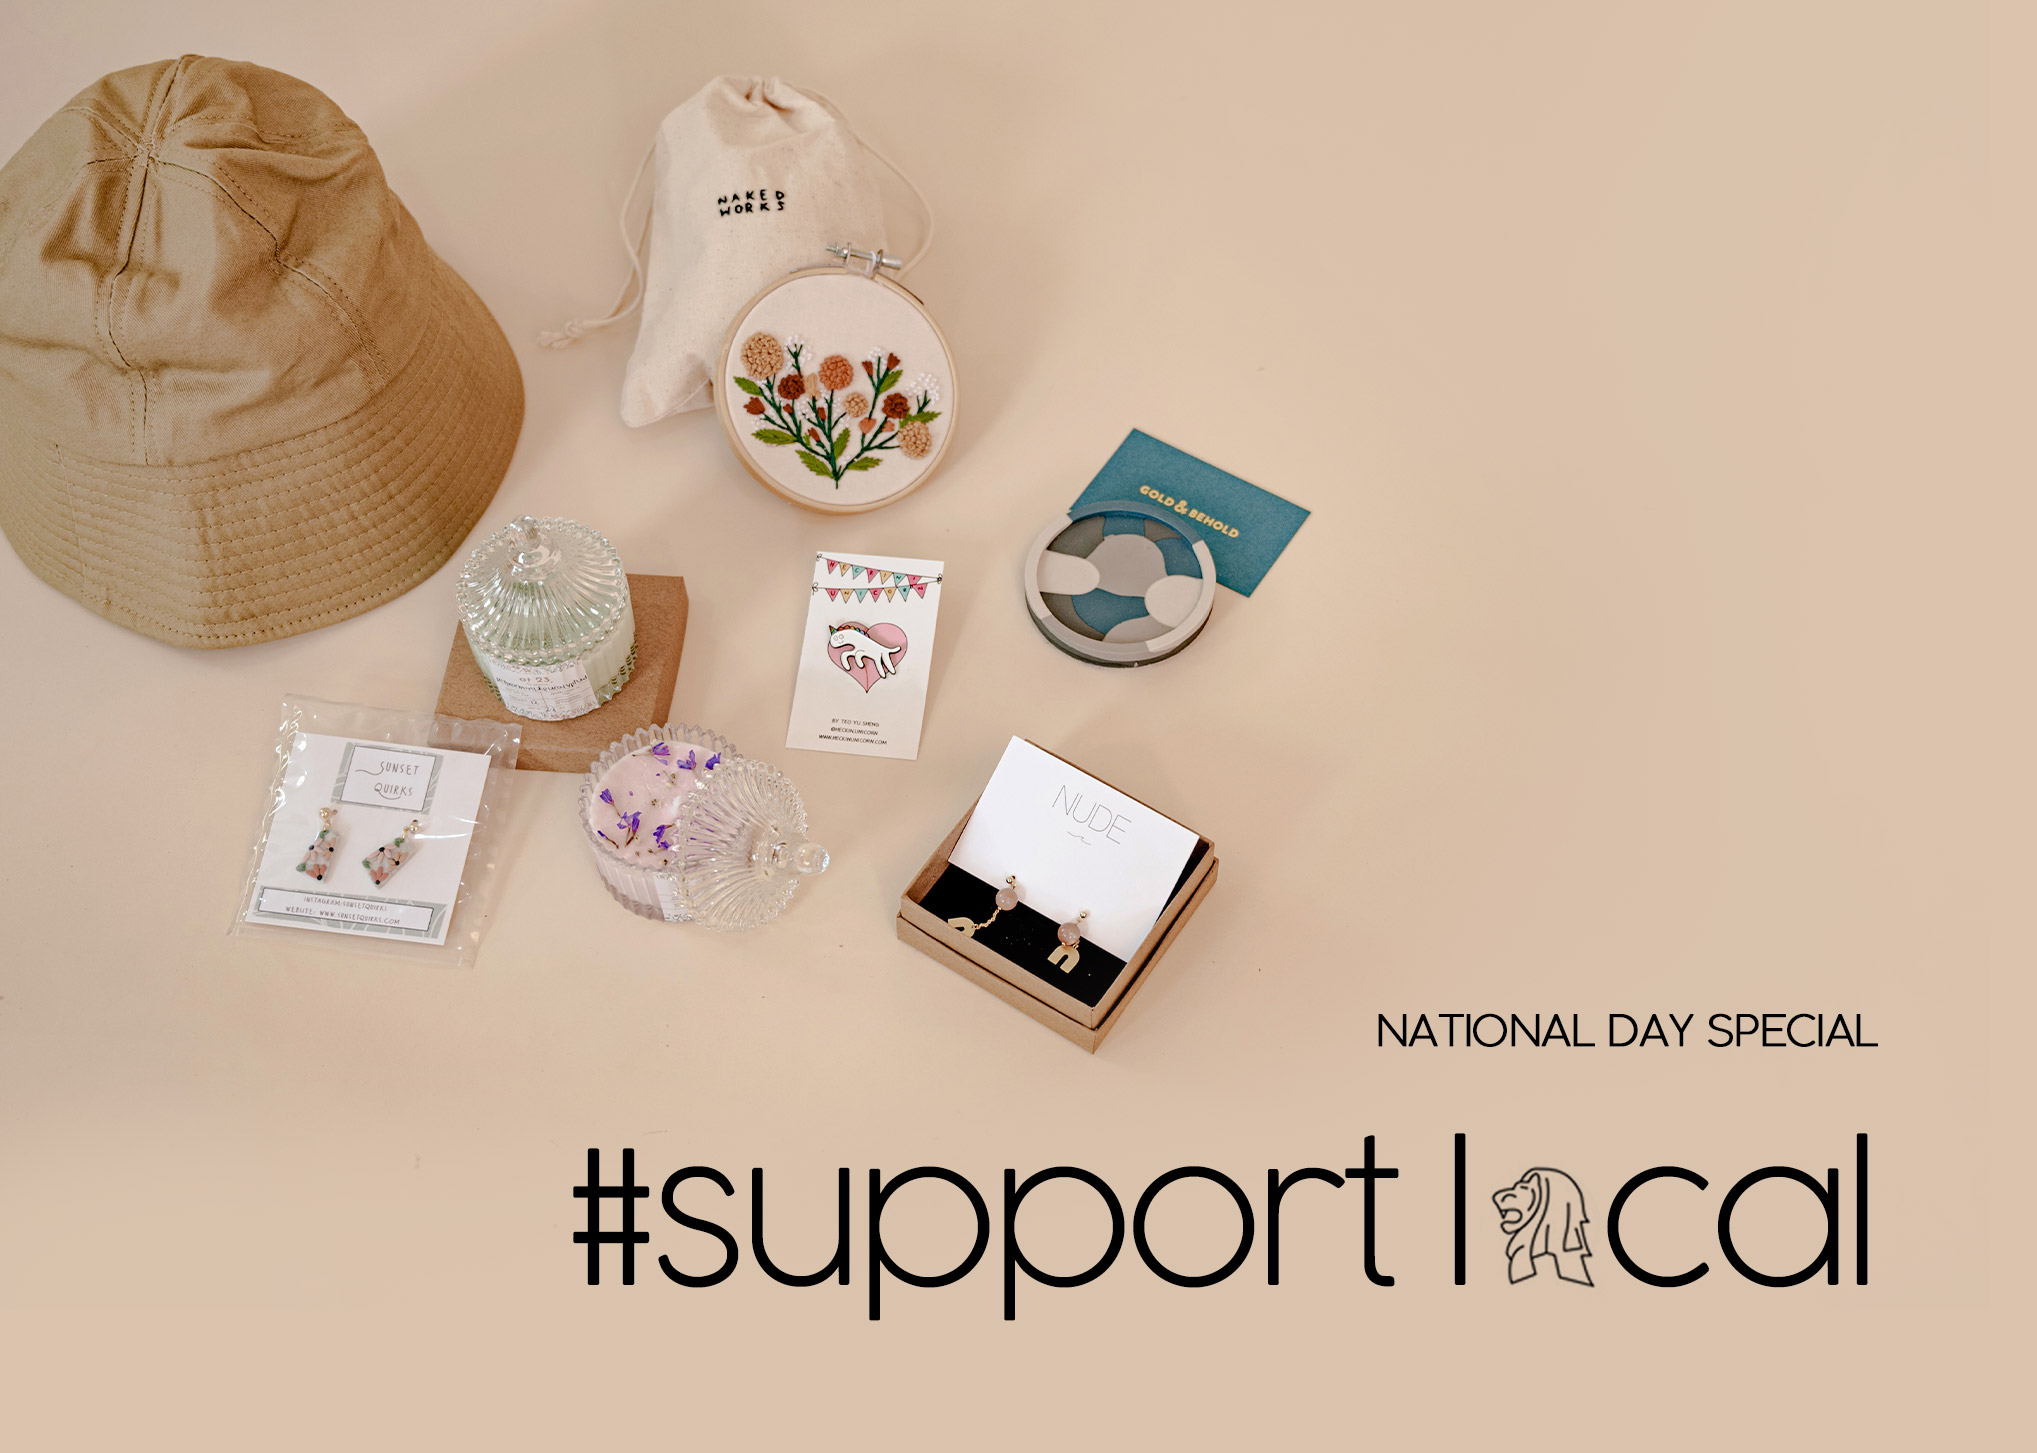 NATIONAL DAY SPECIAL: #supportlocal